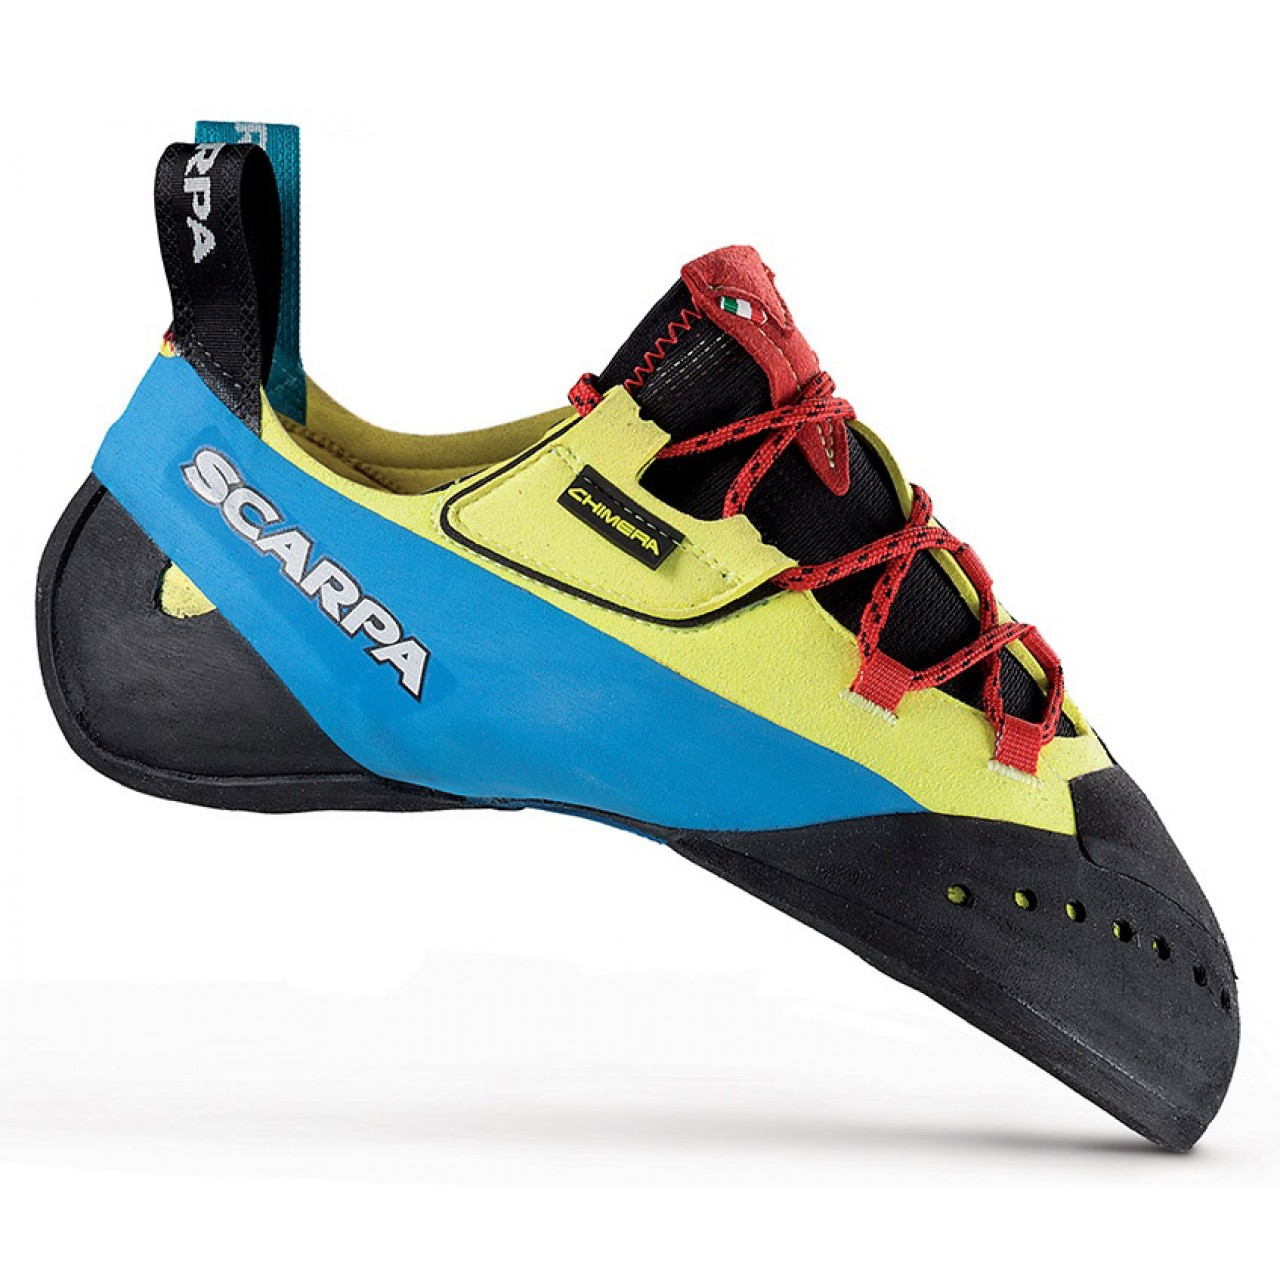 c9b0d59ac3 The Scarpa Chimera is a top end climbing shoe which is built around the  same highly popular last as the Drago and Furia. The Chimera is soft